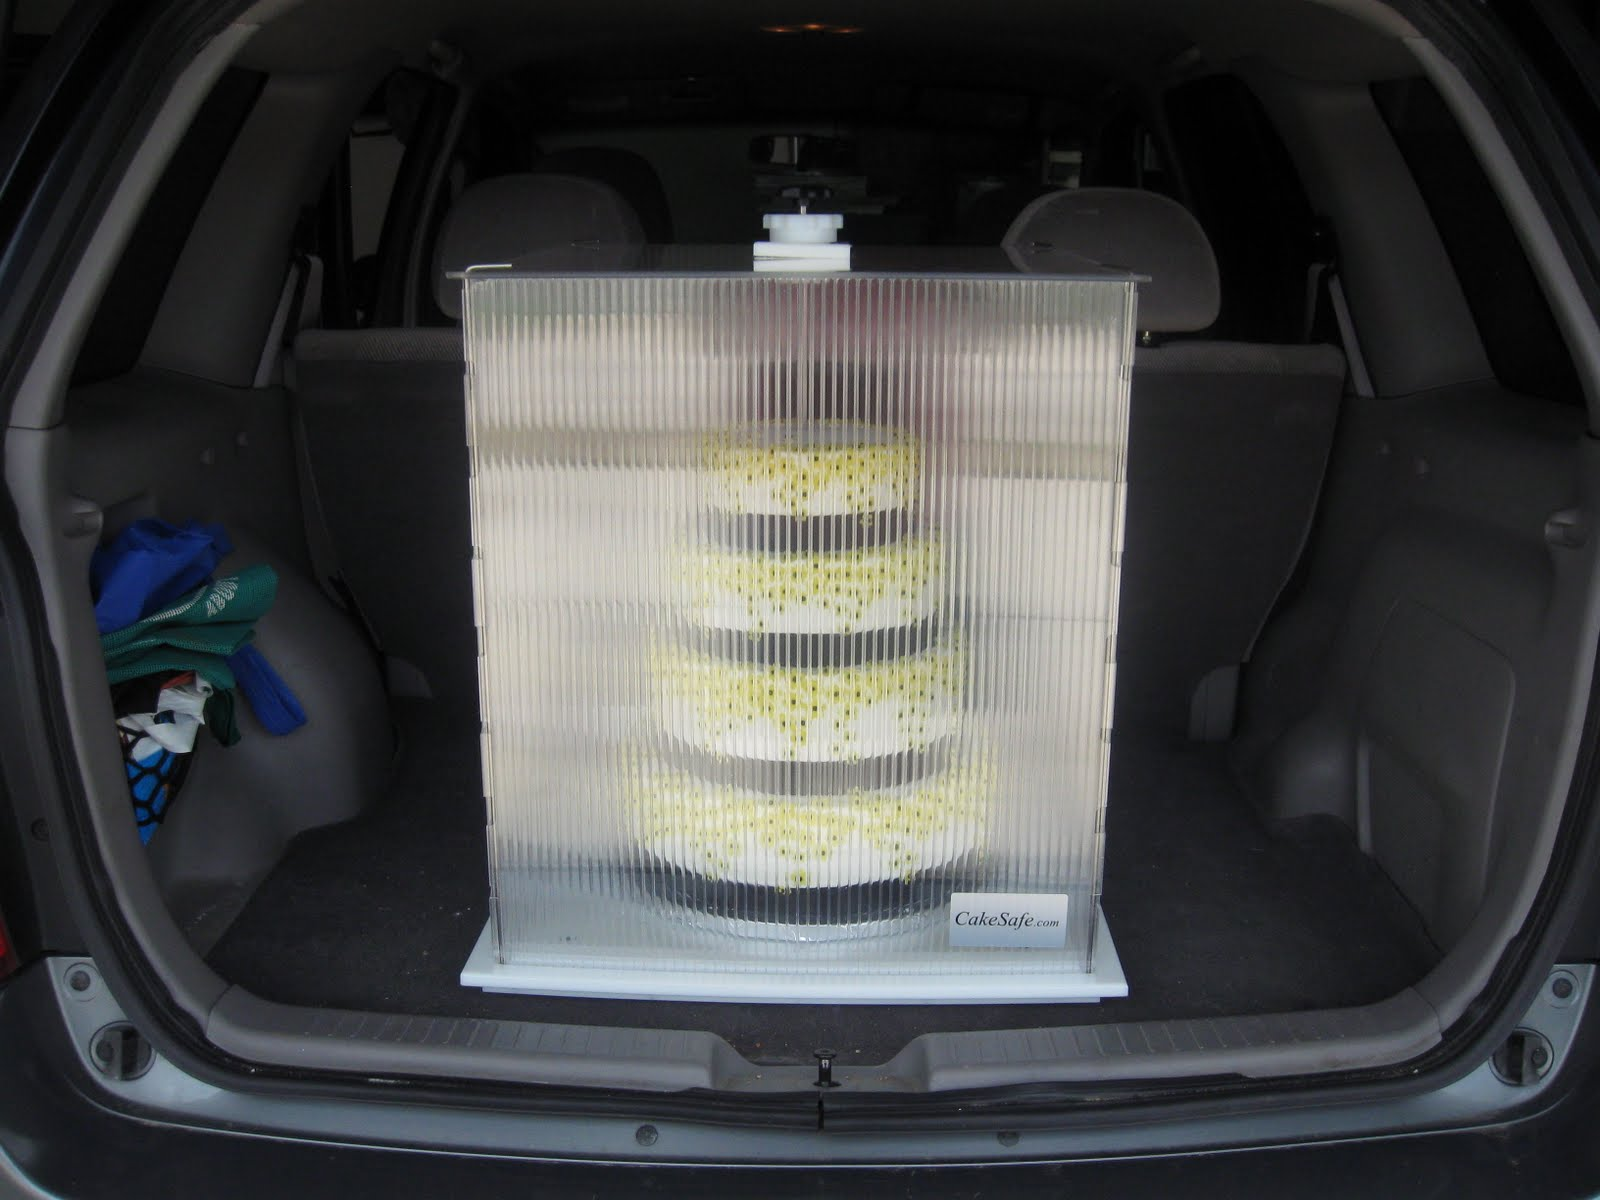 how to transport a cake